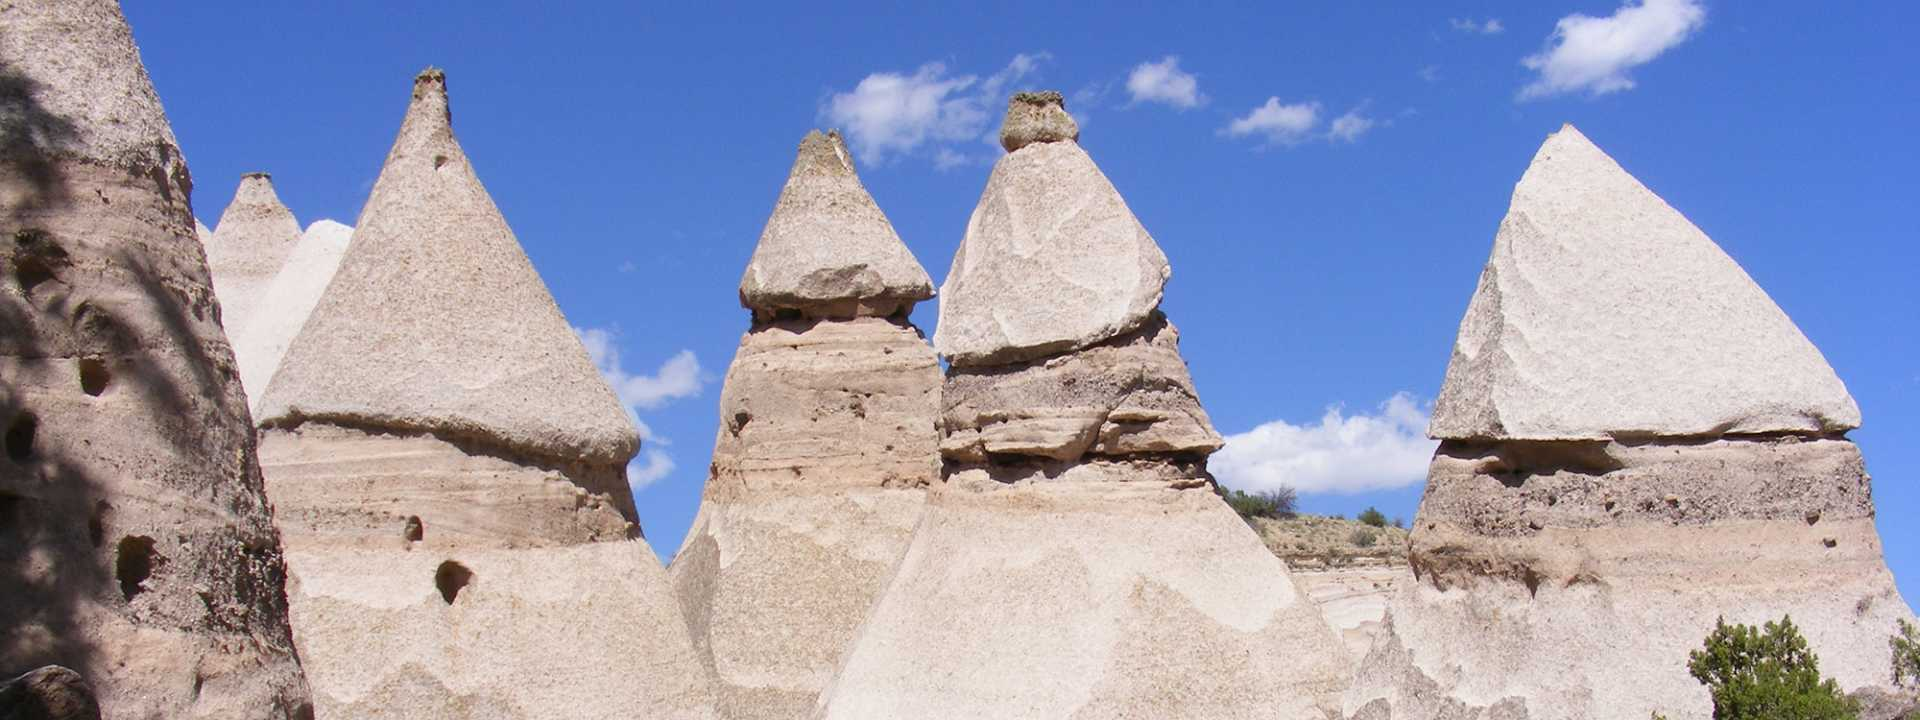 An image of the unique structures at Kasha-Katuwe Tent Rocks National Monument in New Mexico.